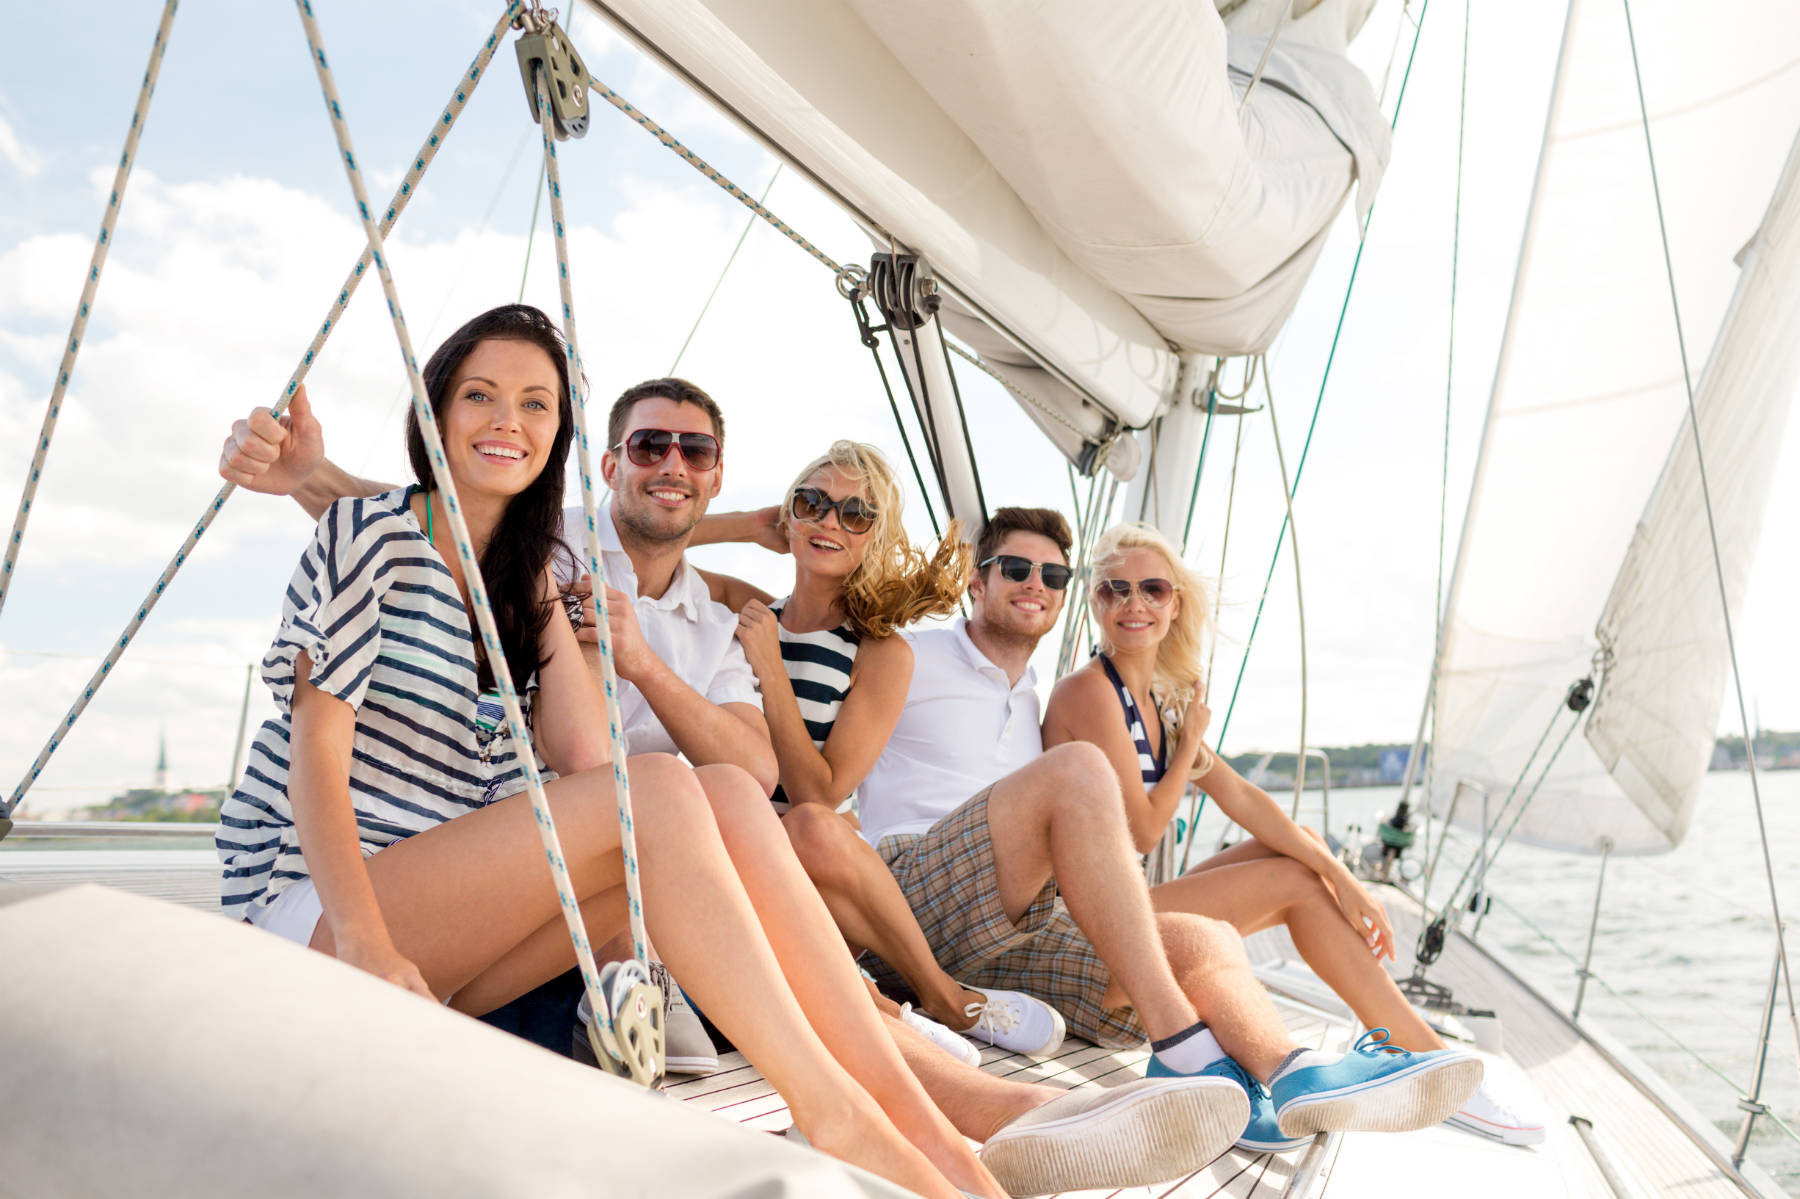 group-on-sailboat